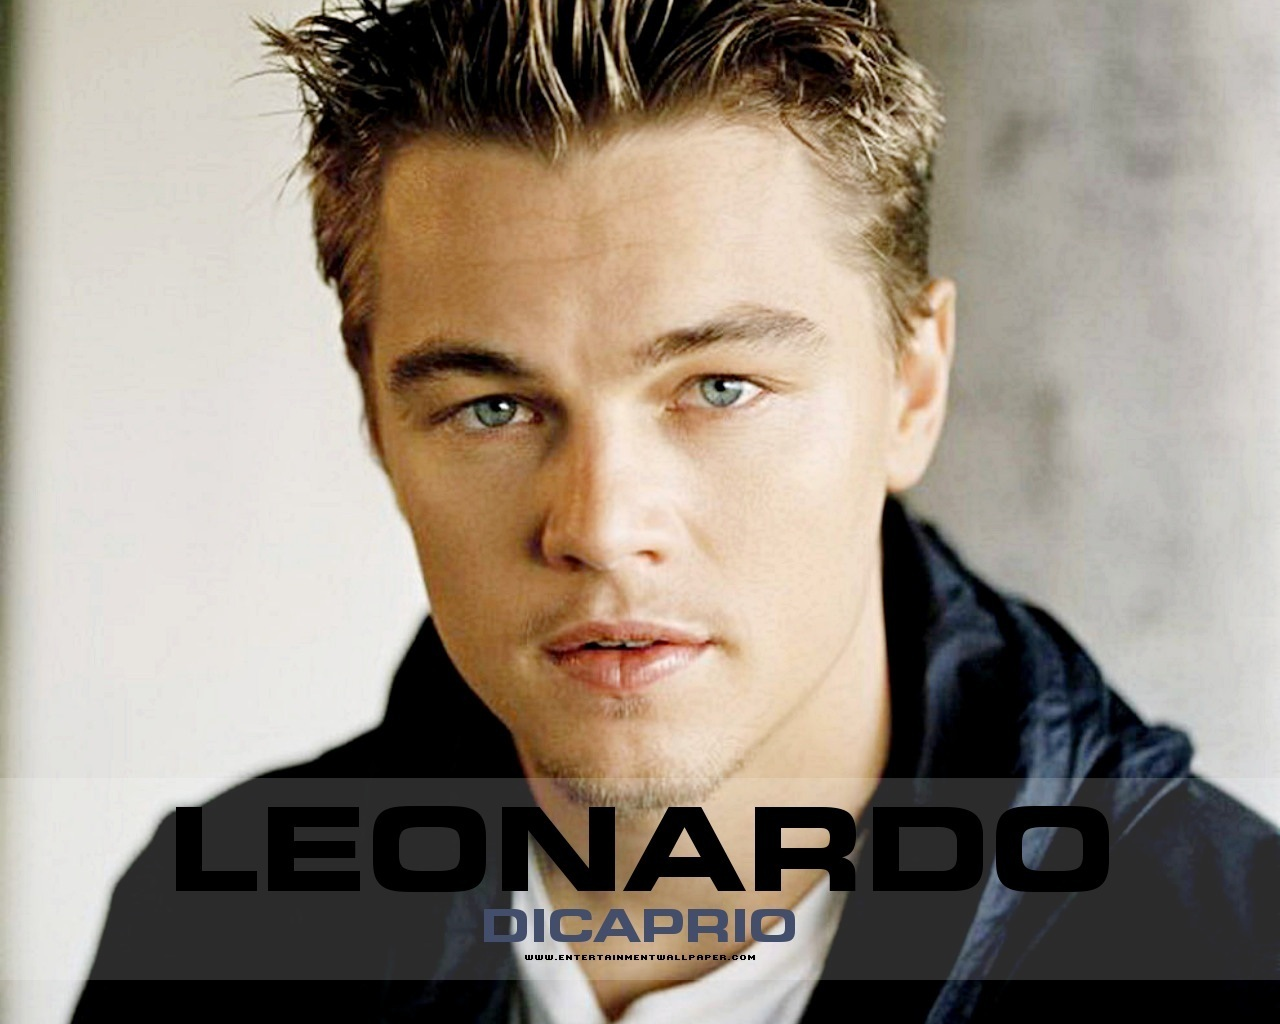 Leonardo dicaprio Wallpaper 11 With 1280 x 1024 Resolution ( 202kB )